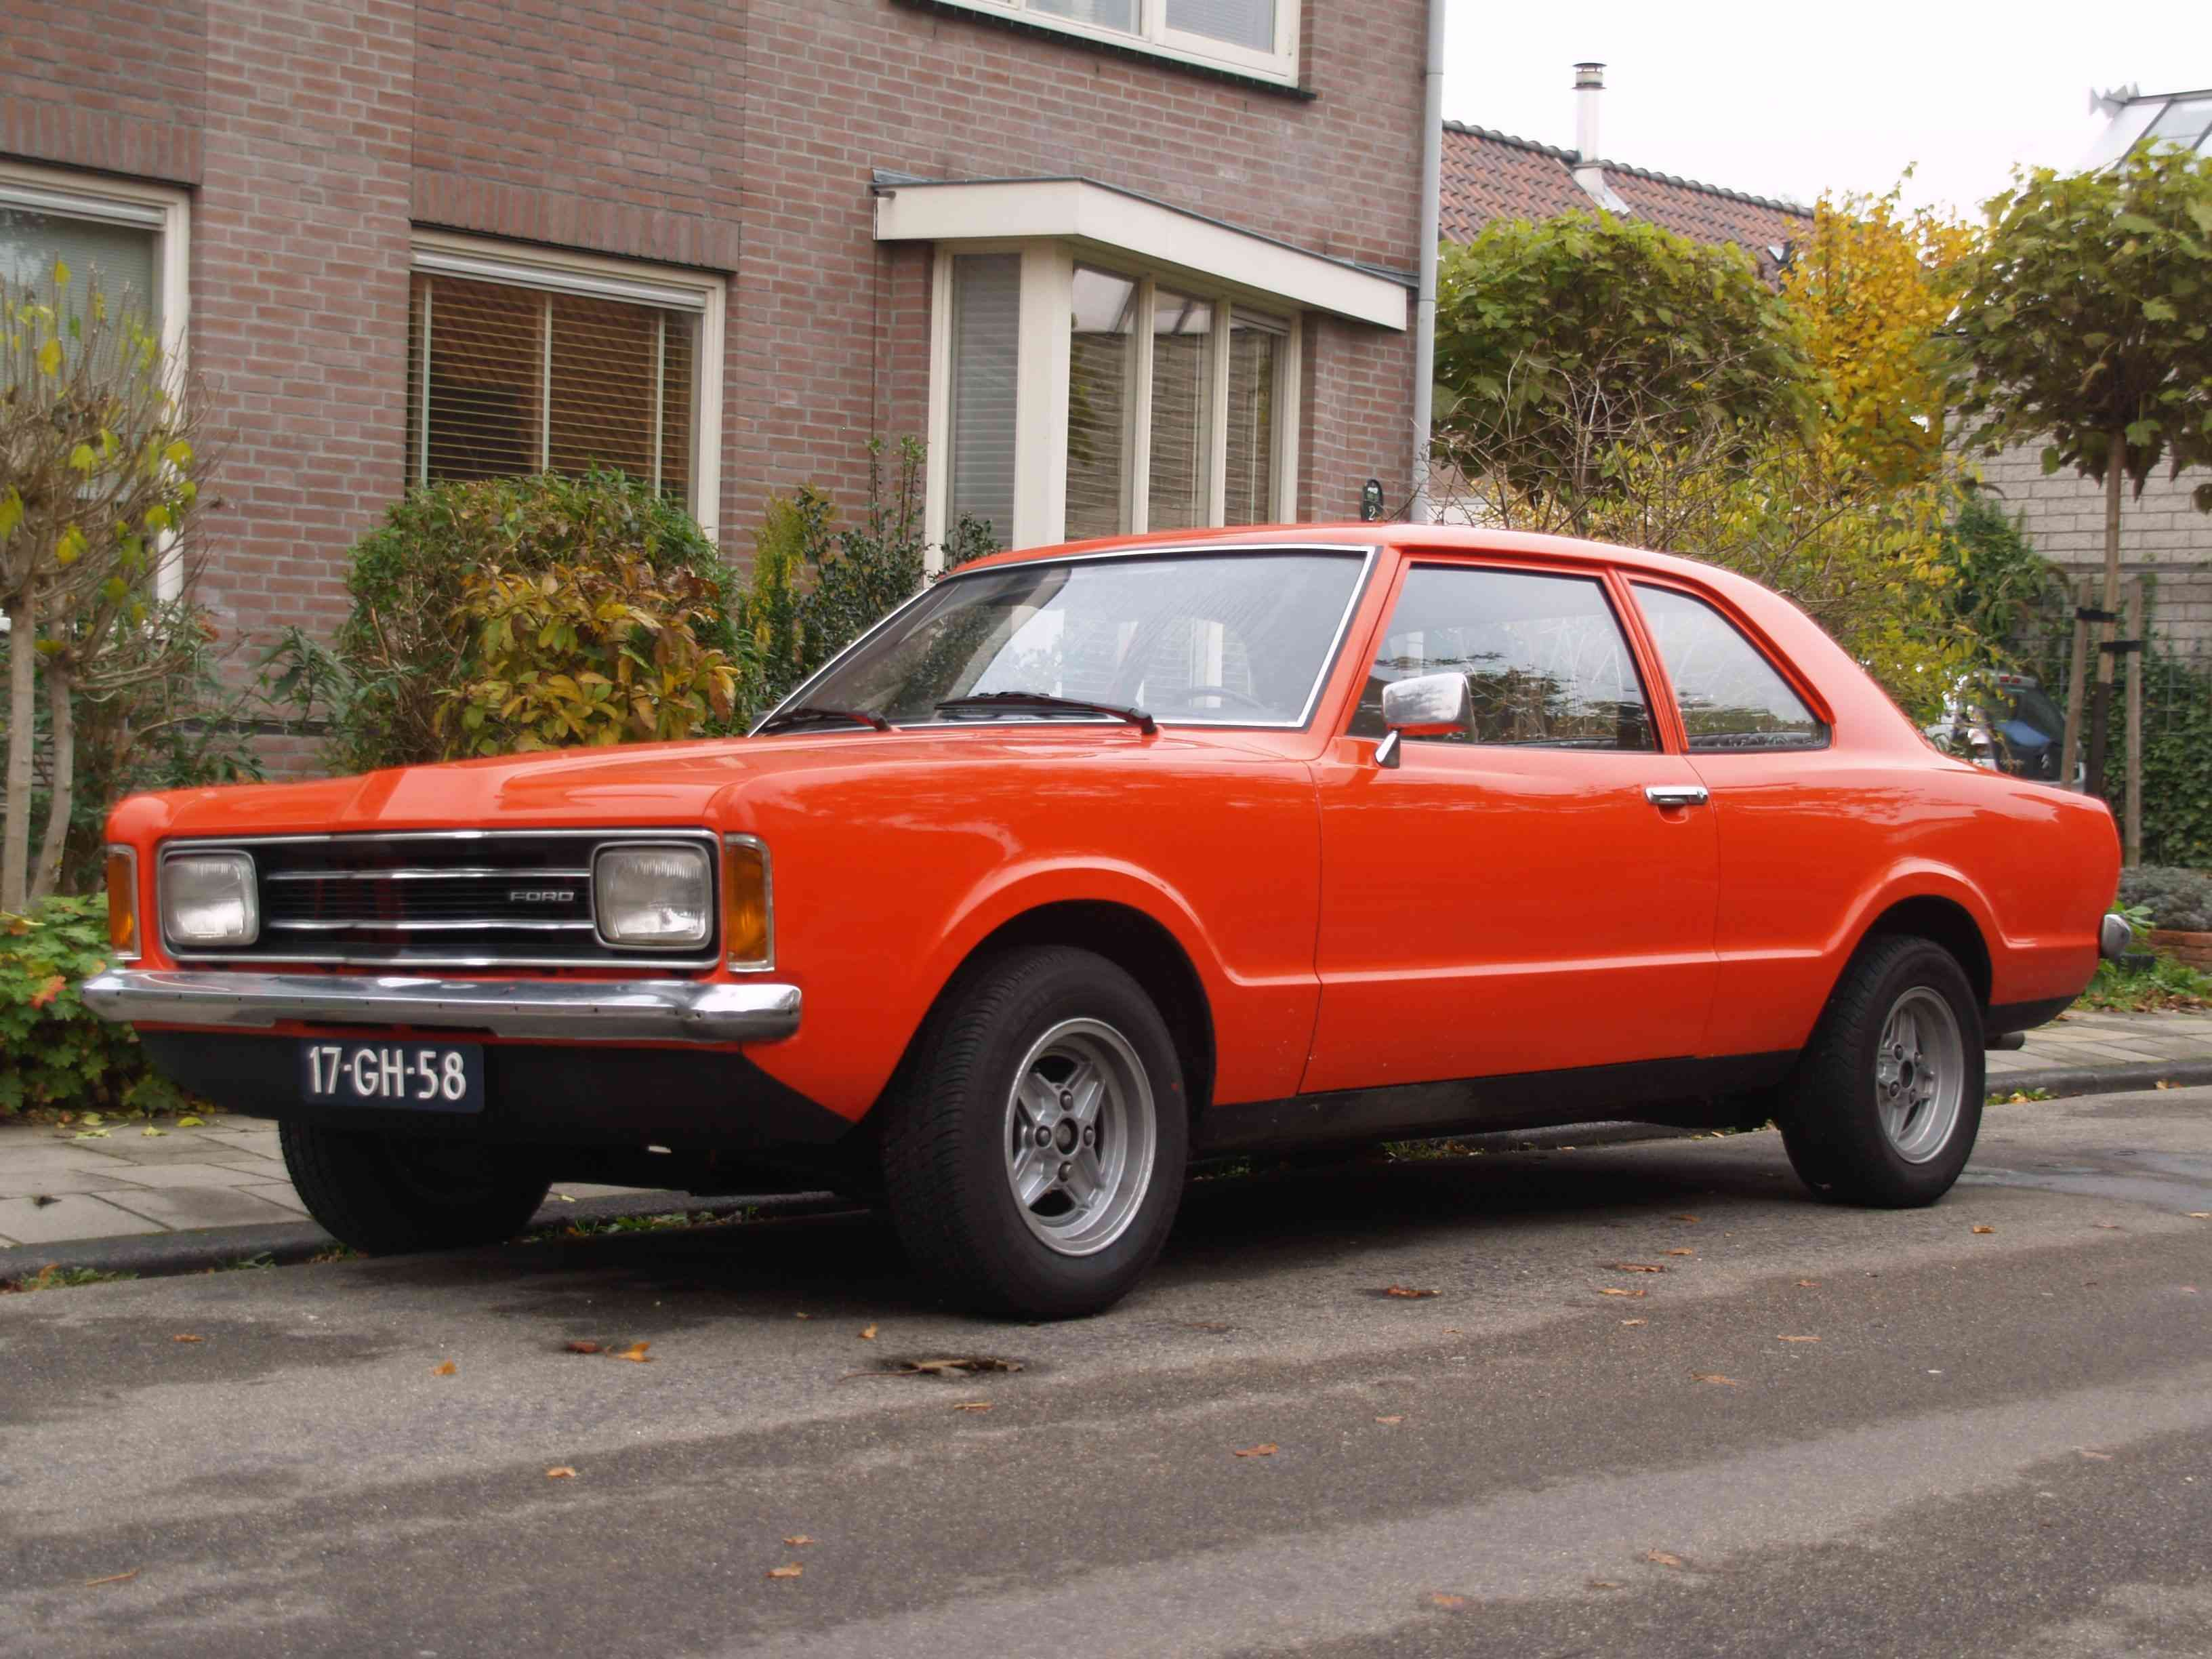 My Ford Taunus 1975 1 6 Restored By Myself Cars Uk Ford Cars